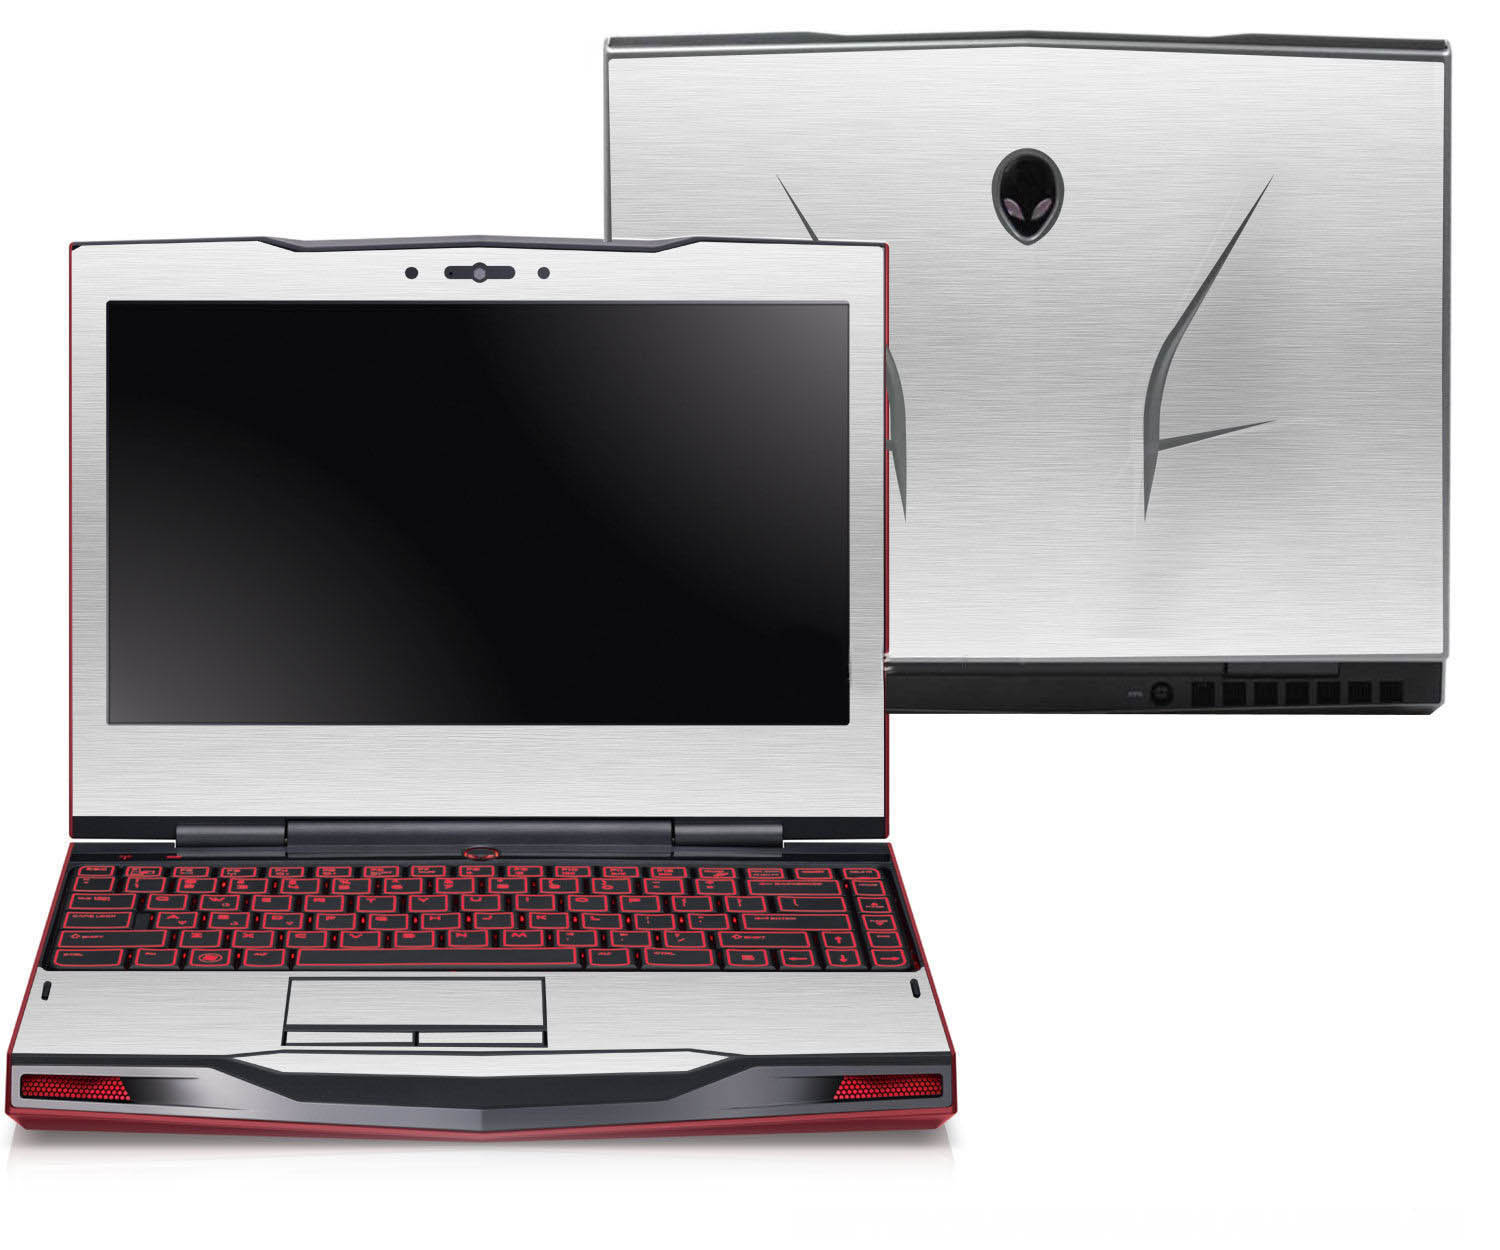 KH Laptop Brushed Glitter Sticker Skin Cover Protector for Alienware 17 M17X R3 R4 ANW17 17.3-inch 2012 release